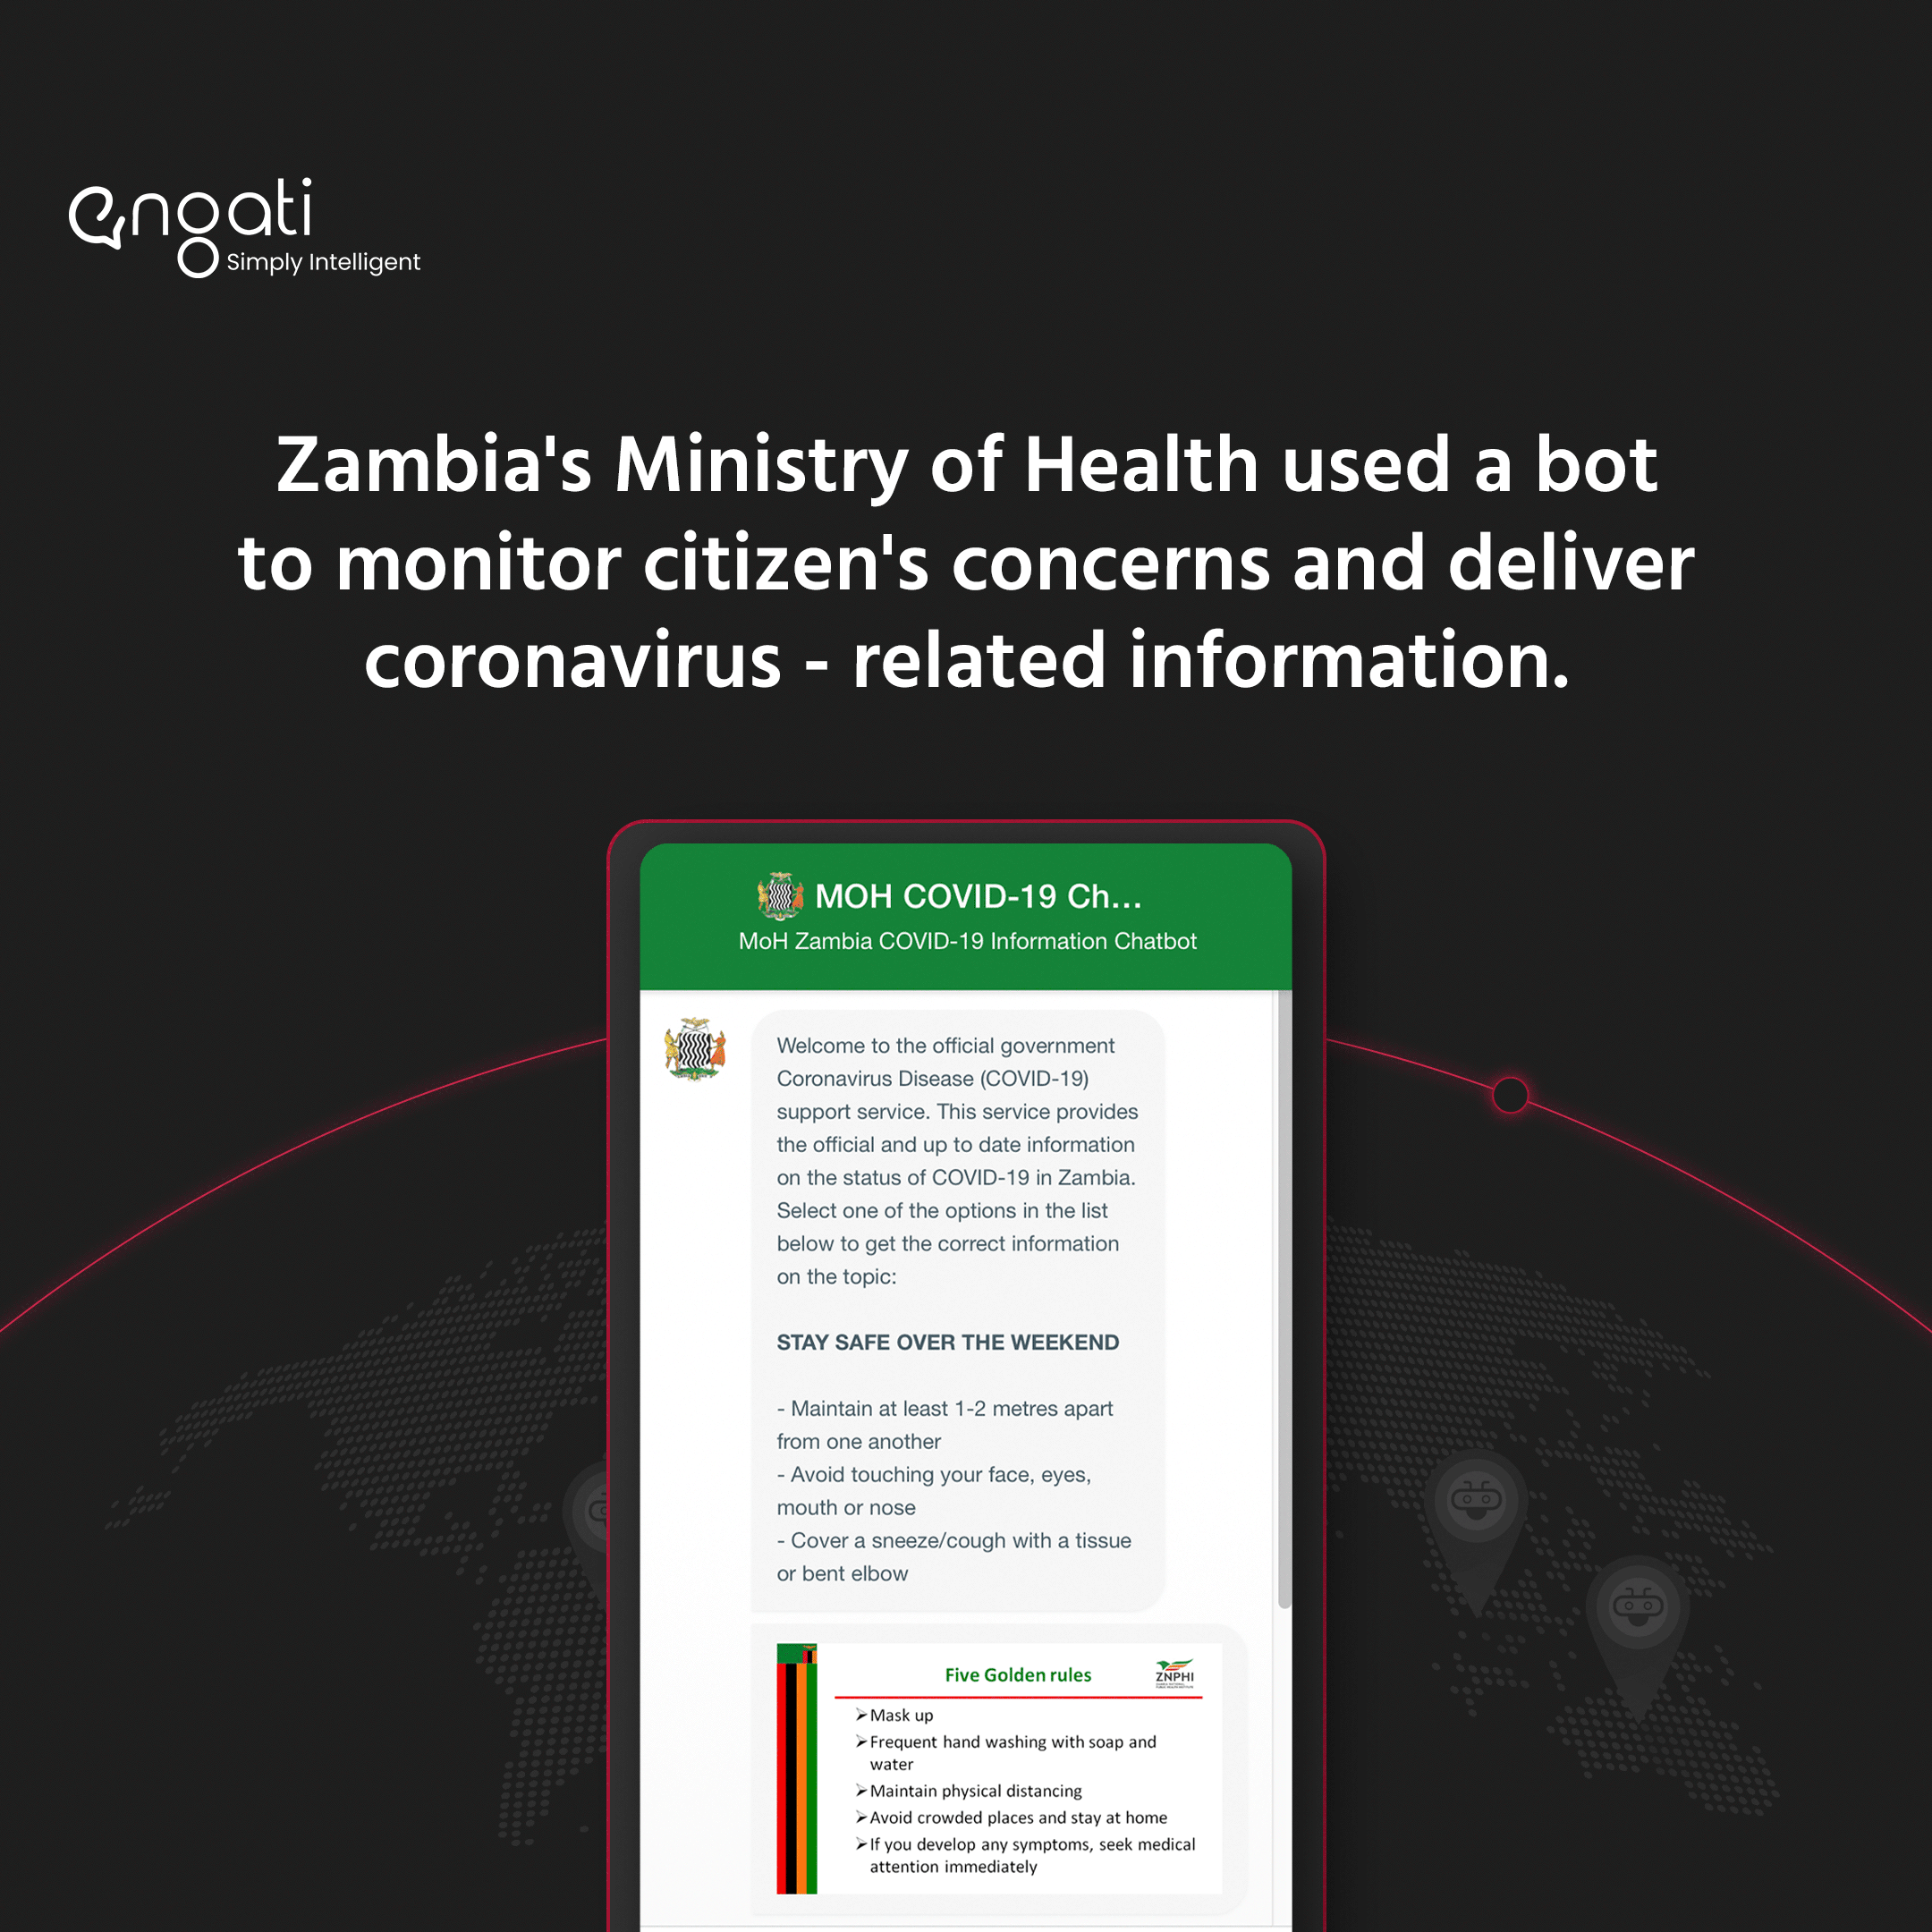 How the Zambian Ministry of Health delivers COVID-related information